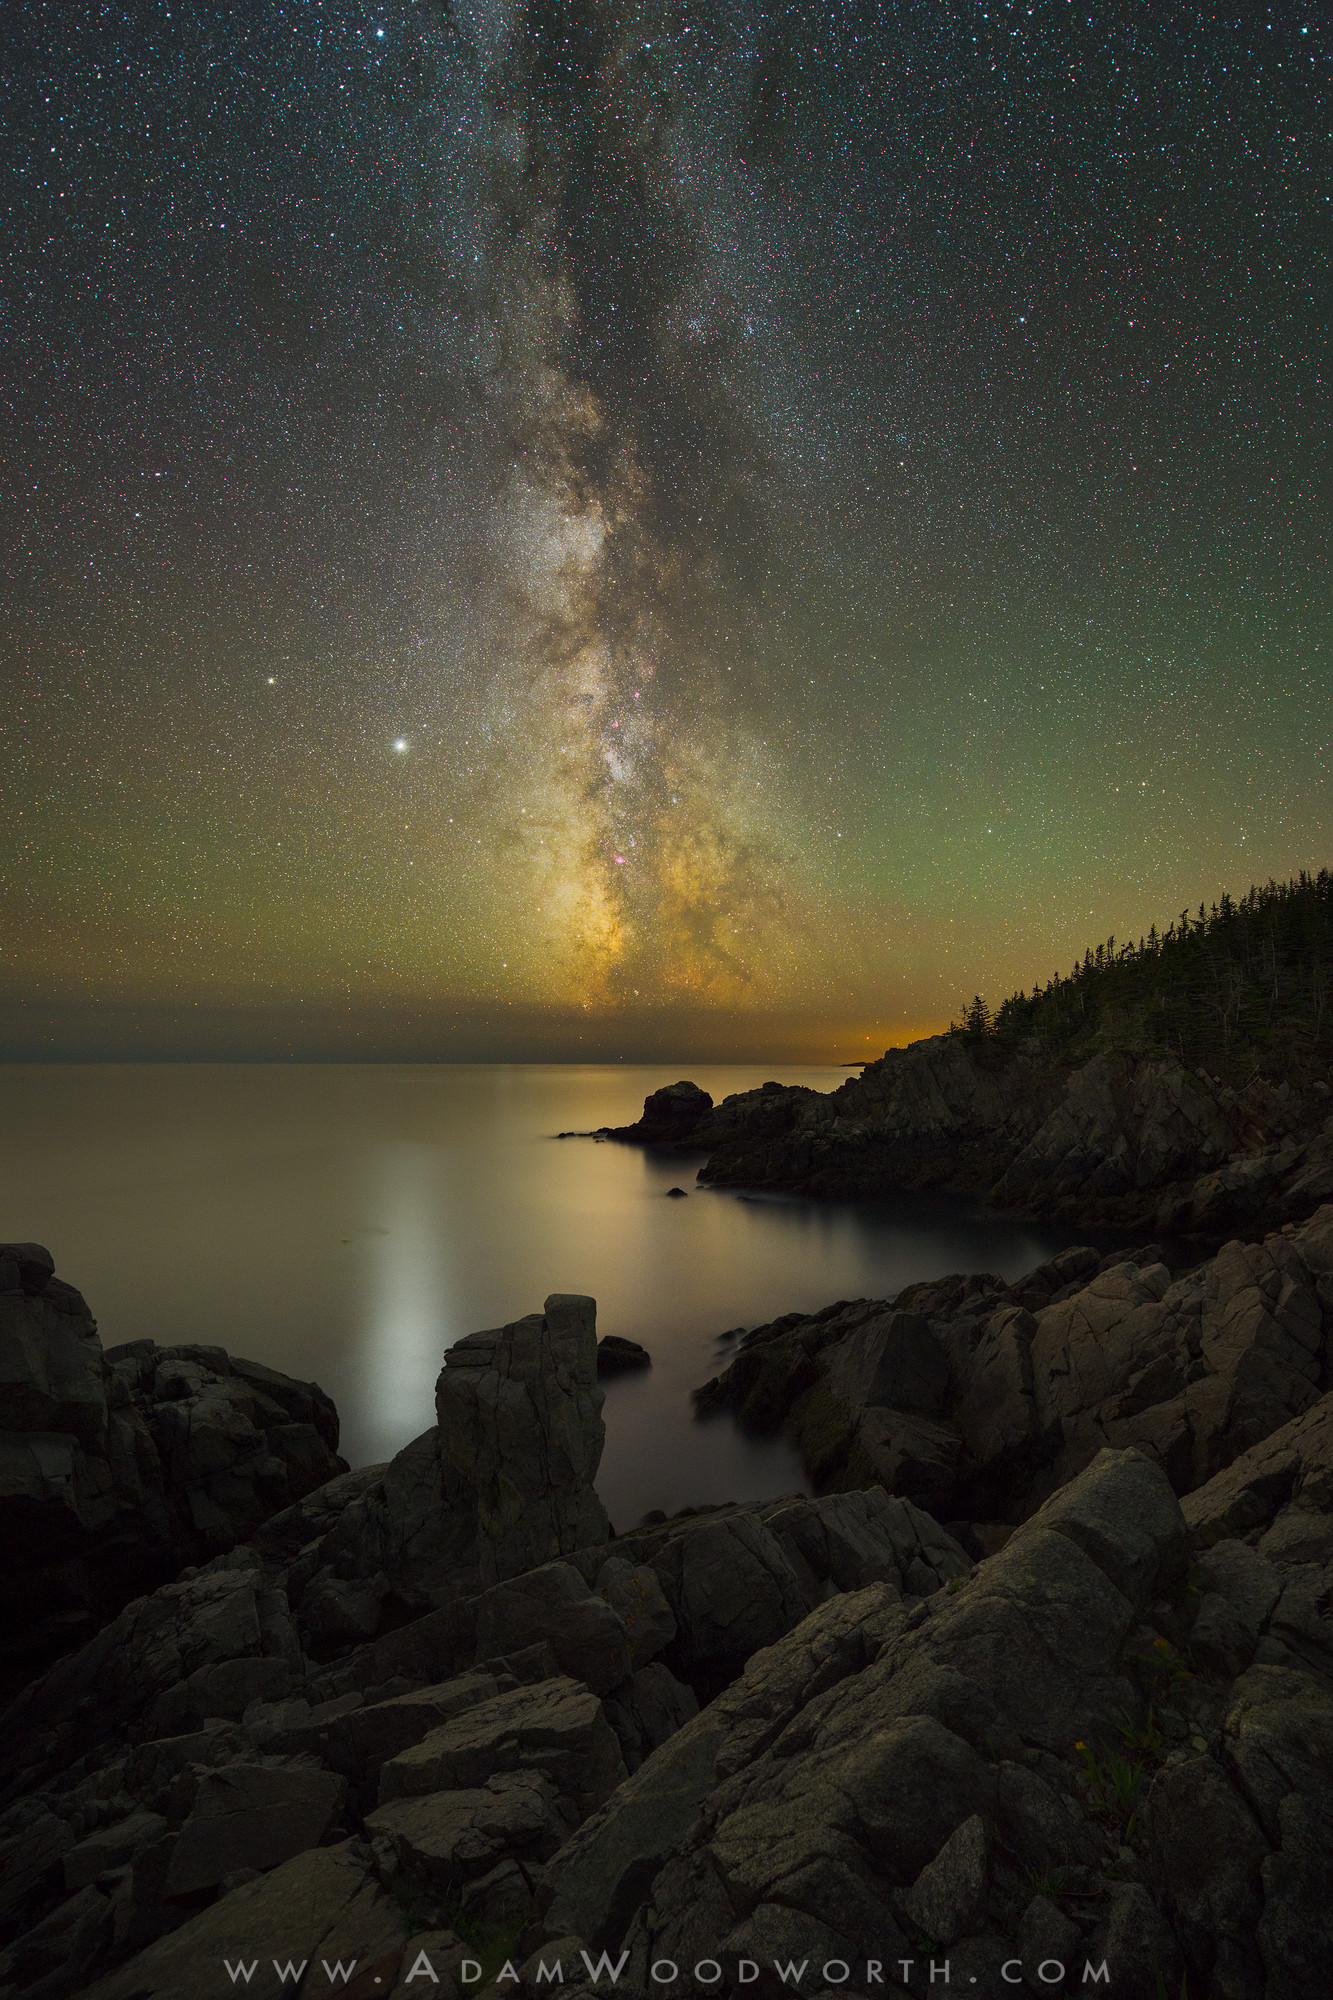 "Another beautiful night on the coast of Maine, with the glow of the Milky Way and Jupiter reflecting in the ocean. Saturn is also visible, to the upper-left of Jupiter.  Nikon Z 7, Mount Adapter FTZ, NIKKOR 14-24mm f/2.8 lens @ 14mm, f/2.8.  Sky: Star stack of 20 exposures at ISO 6400 and 10 seconds. Stacked in the new version of Starry Landscape Stacker that supports raw files, making the workflow a bit easier.  Foreground: Two exposures each at ISO 1600 and 10 minutes, focus stacked. The foreground raw files were processed in Capture One Pro because Lightroom does not let you disable built-in lens profiles, which most mirrorless cameras have when using OEM lenses. This causes very bad warping artifacts, so the workaround I am now using is to use another raw editor to prep photos when I need to disable built-in lens profiles. Capture One allows you to do this, plus its automatic hot pixel removal is the best I've seen in a raw editor, and it even has a ""Single Pixel"" slider allowing you to remove most of the more stubborn hot pixels. Careful using it on star images, it can eat away at stars, but so far I only use it on my long exposure foregrounds where the sky is blurred and will be replaced anyways. Since I rely on Capture One now for hot pixel removal in foreground shots I don't bother with Long Exposure Noise Reduction, which cuts the capture time in half.  The foreground images and star stacked sky result image were blended in Photoshop to create the final image, with edits applied to bring out colors and details as usual. All shots in the same place on the same night without moving the camera."